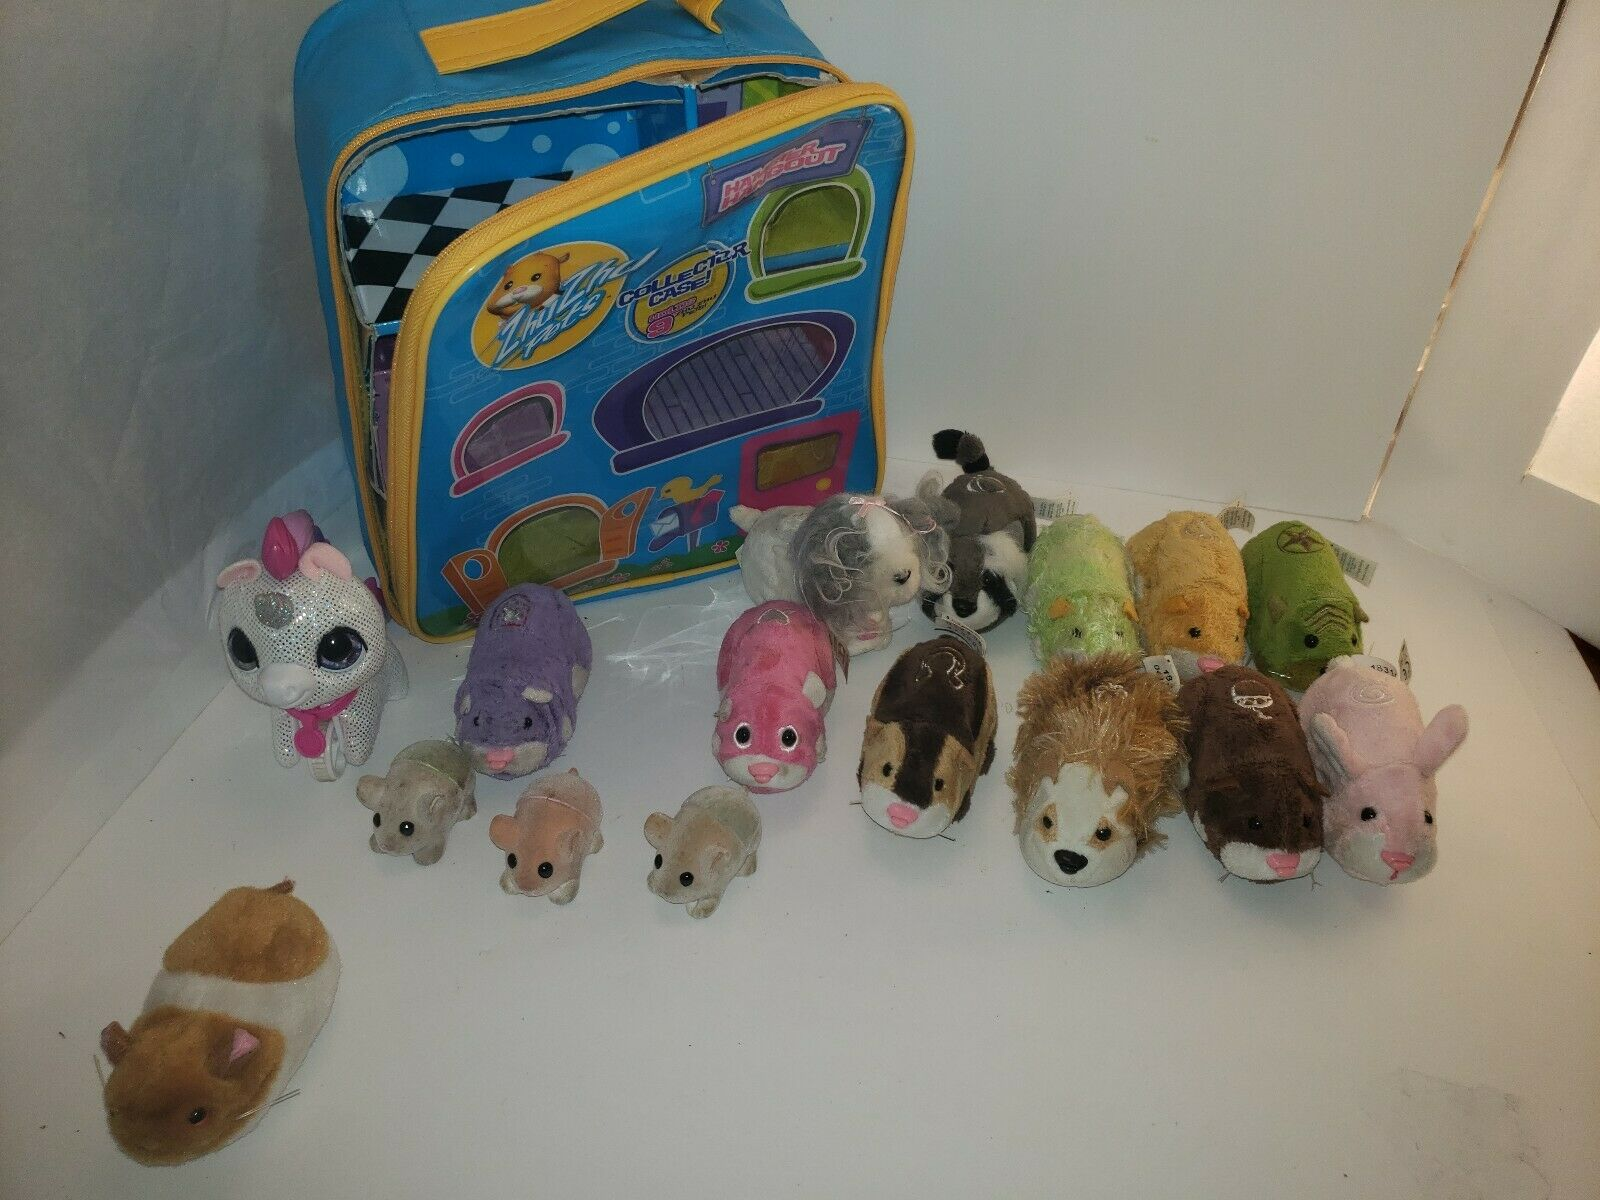 Huge Zhu Zhu Pets Masse Hamsters-11 Kleinkinder-3 and bag 2 unknown tested